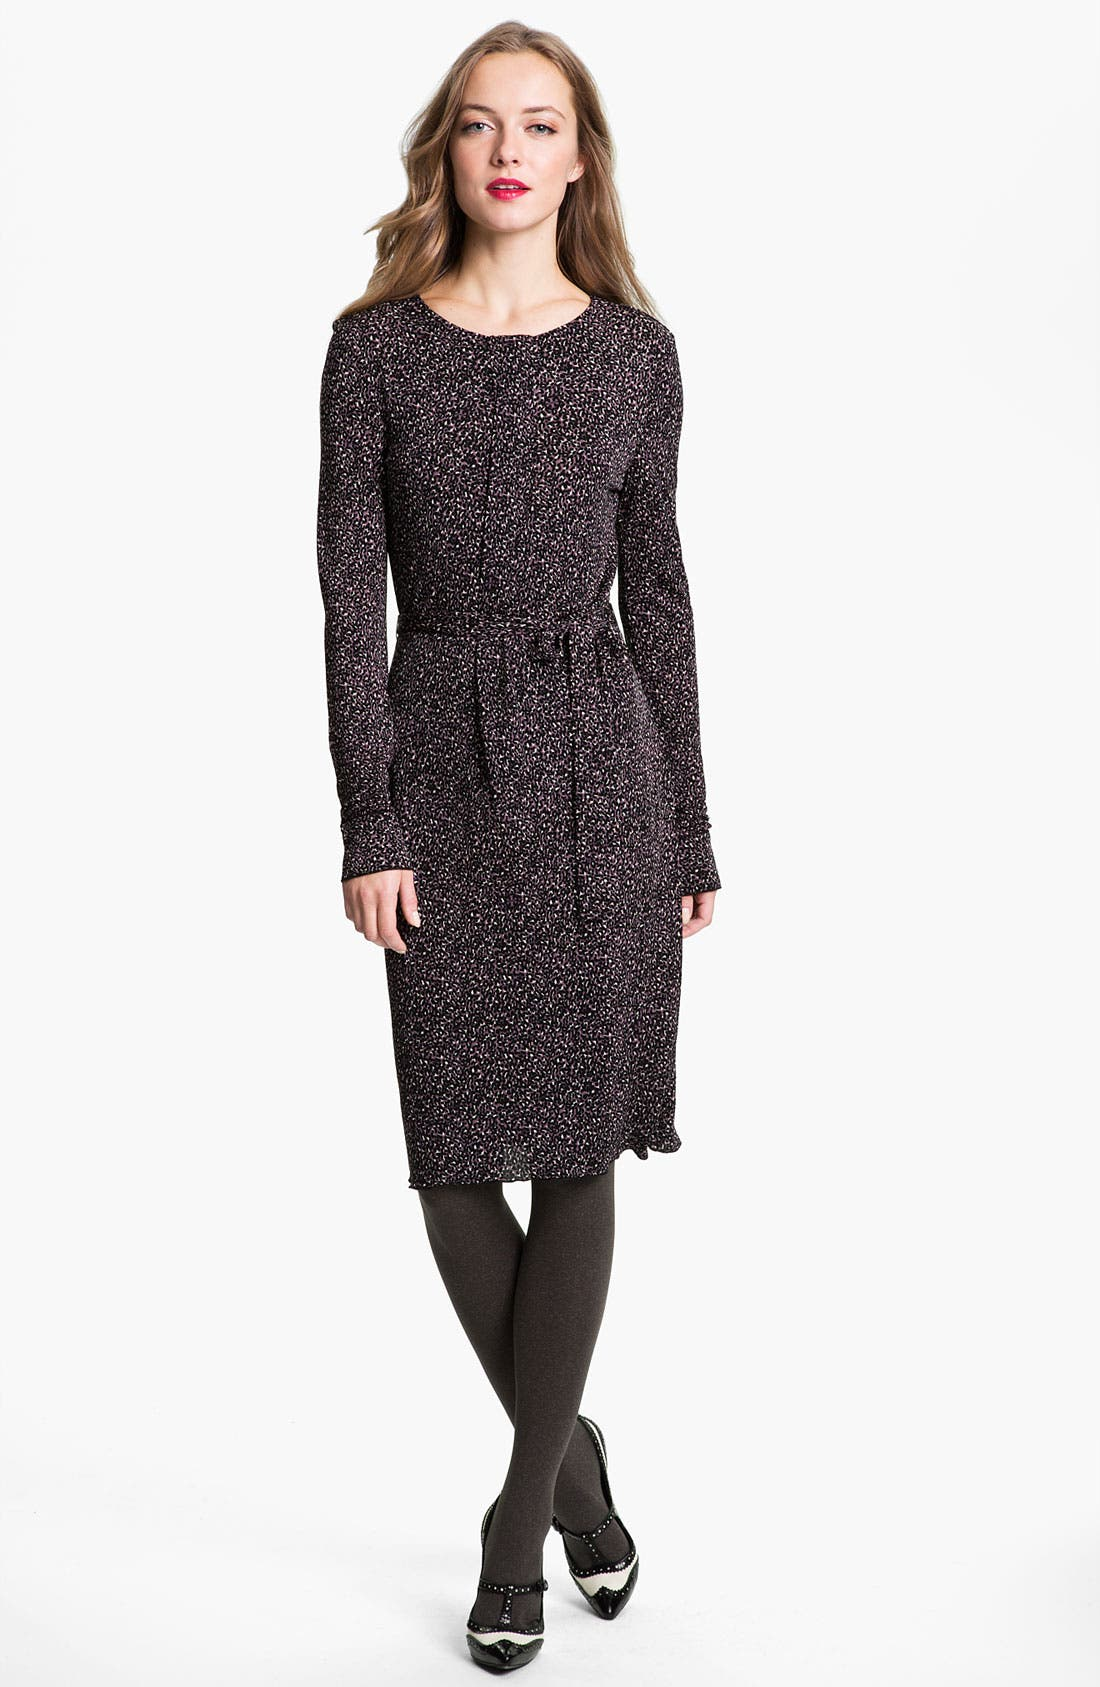 Alternate Image 1 Selected - Tory Burch 'Tammy' Belted A-Line Dress (Online Exclusive)